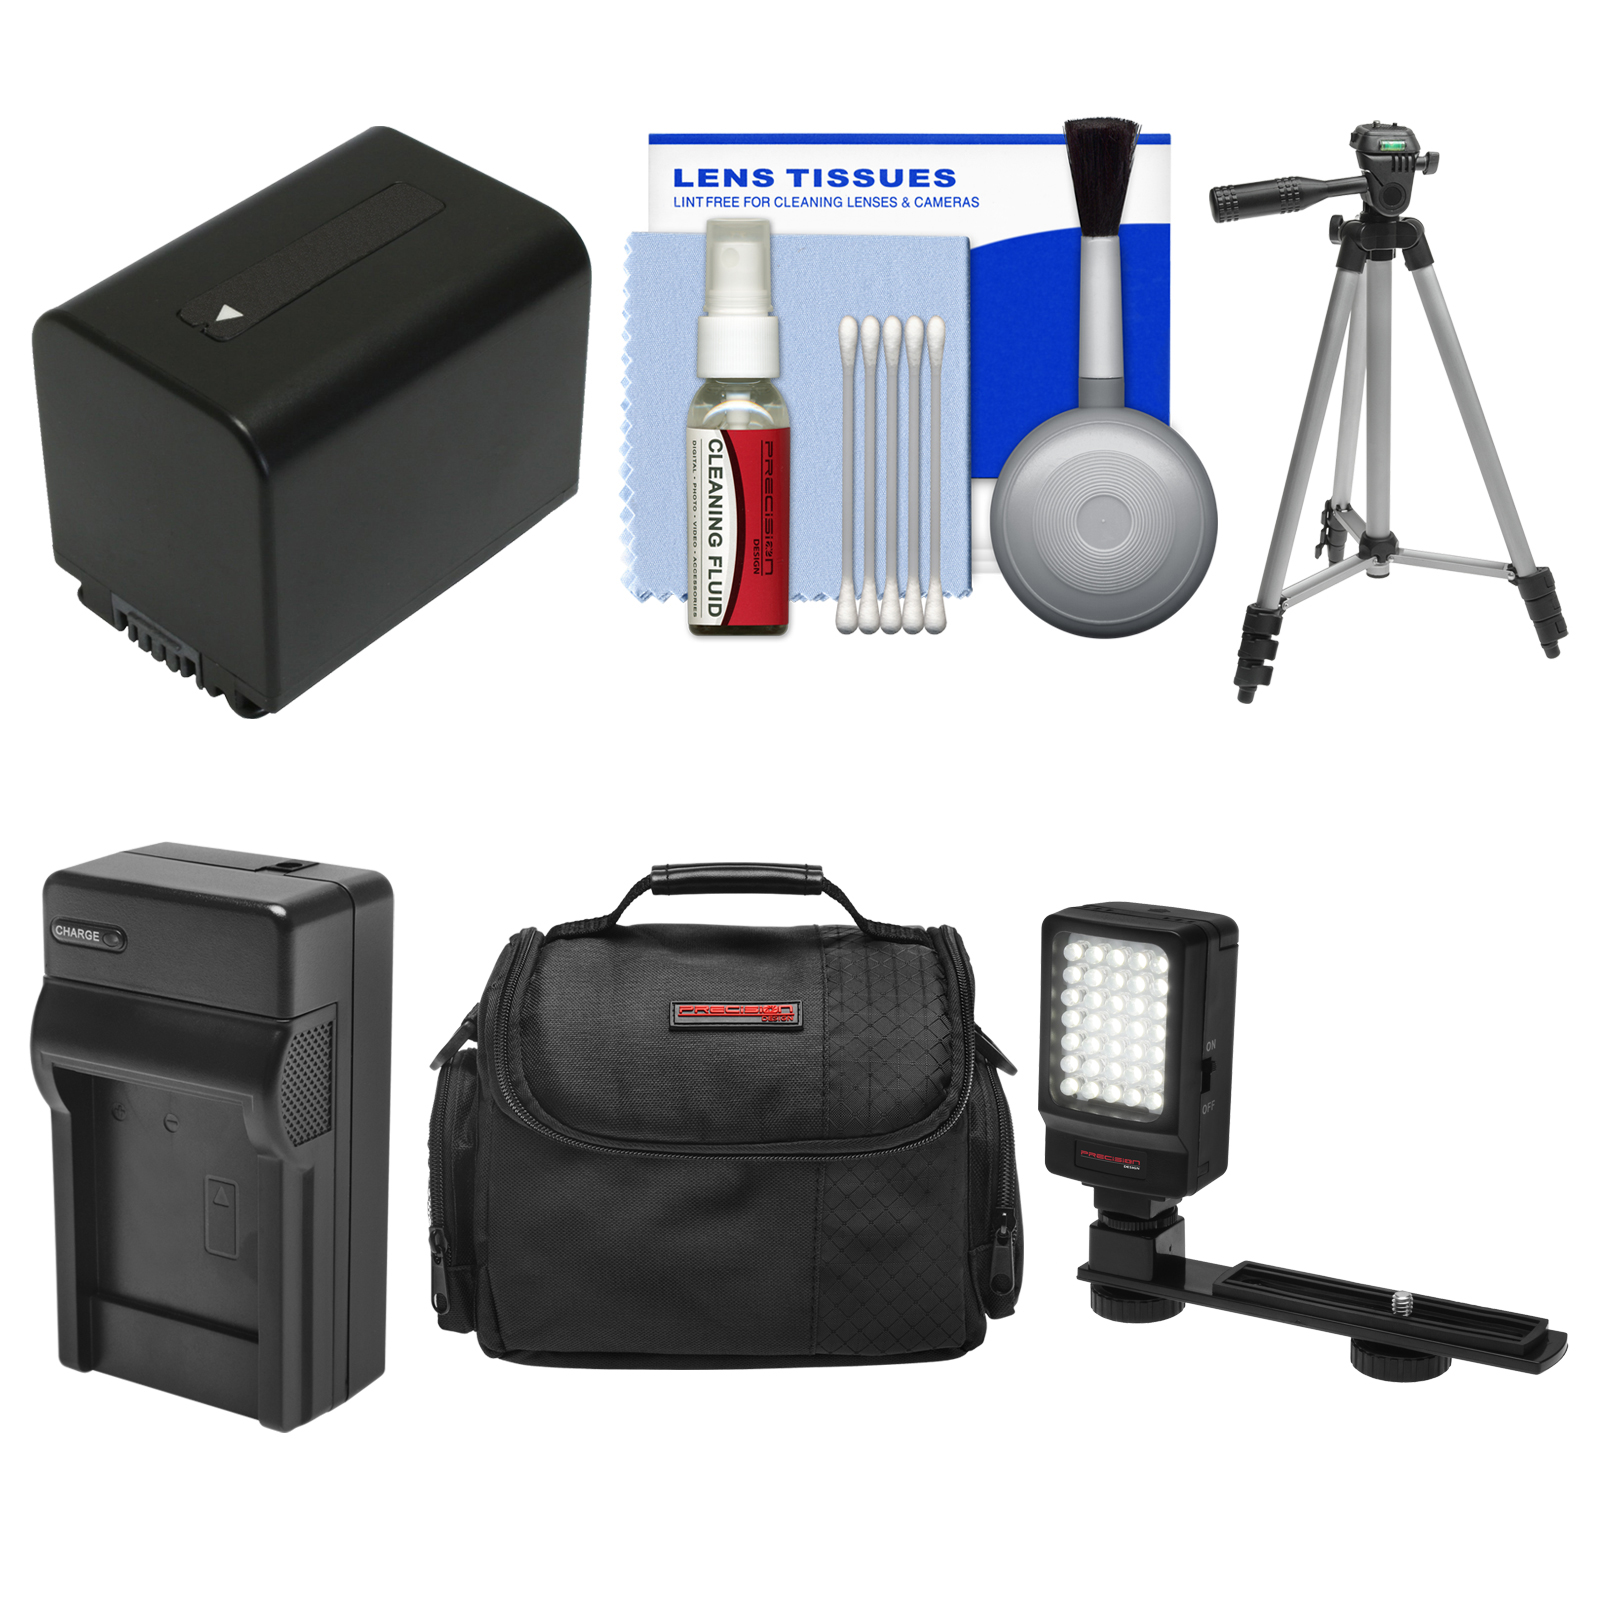 Essentials Bundle for Sony Handycam HDR-CX450, CX455, PJ670, PJ810, AX33, AX100 Camcorders with Case + LED Light + NP-FV70 Battery & Charger + Tripod Kit